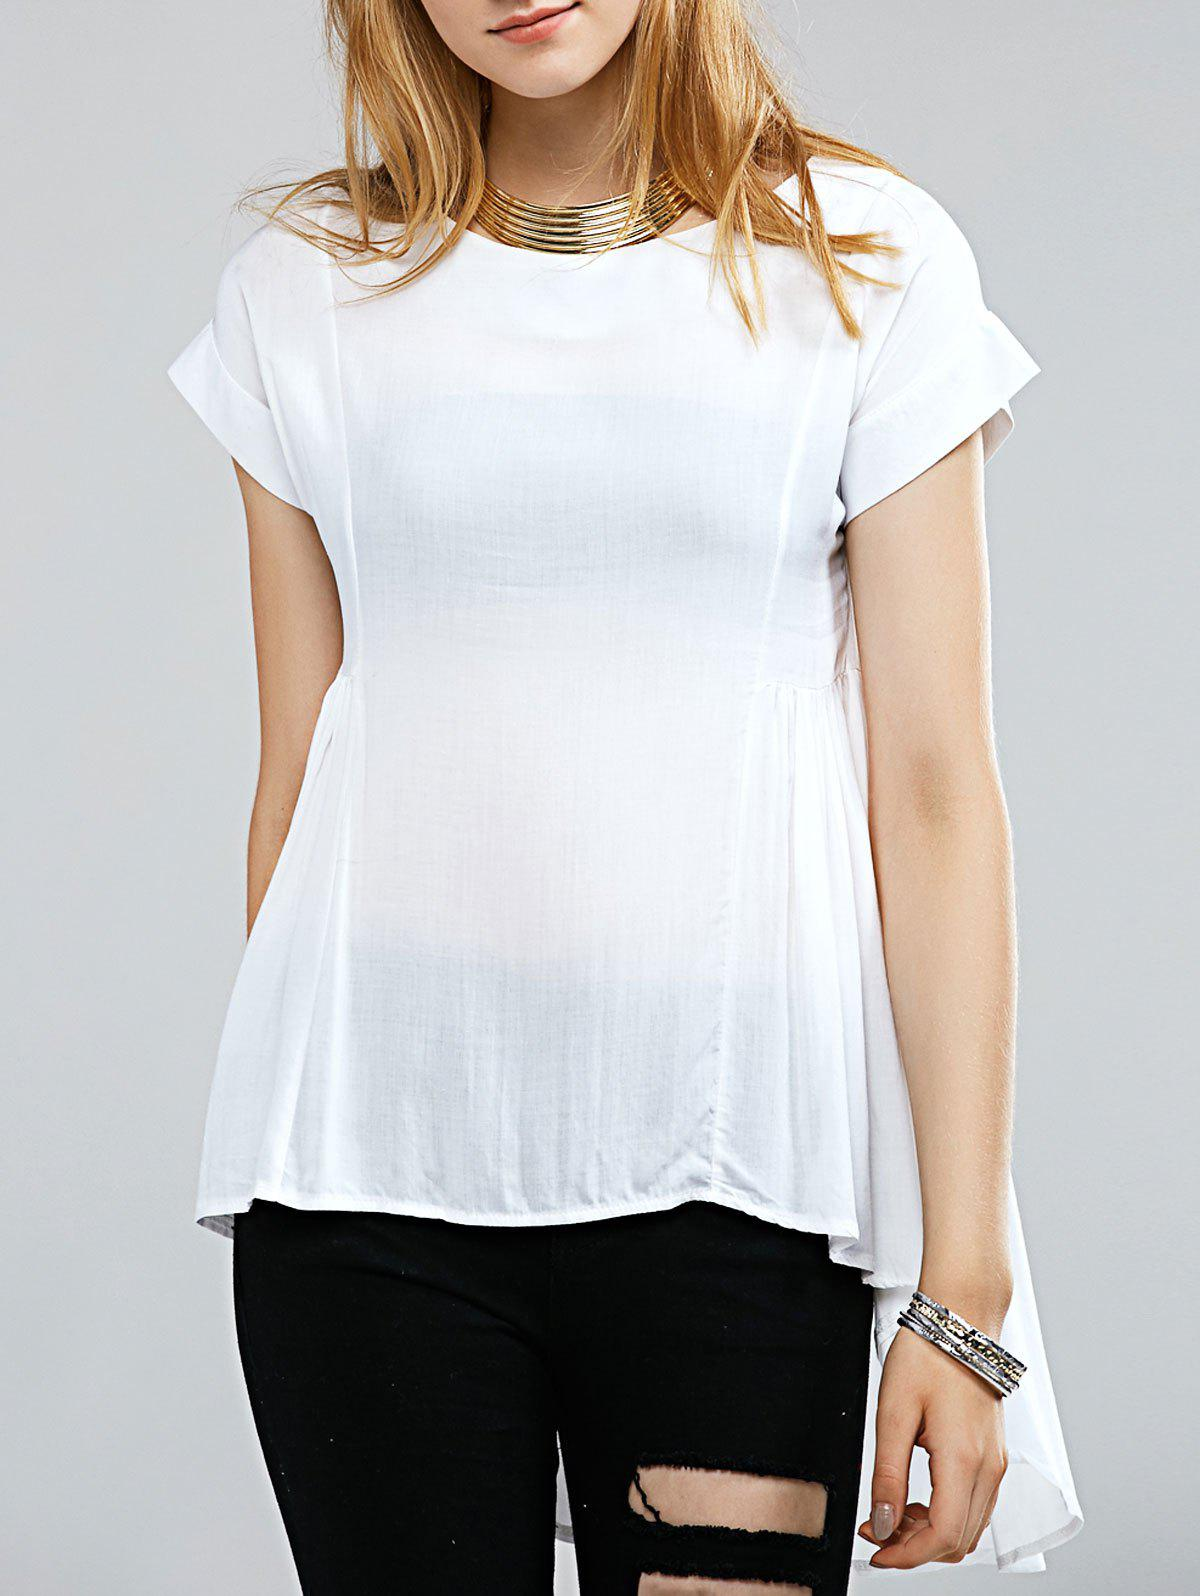 Refreshing See-Through Irregular Blouse For Women